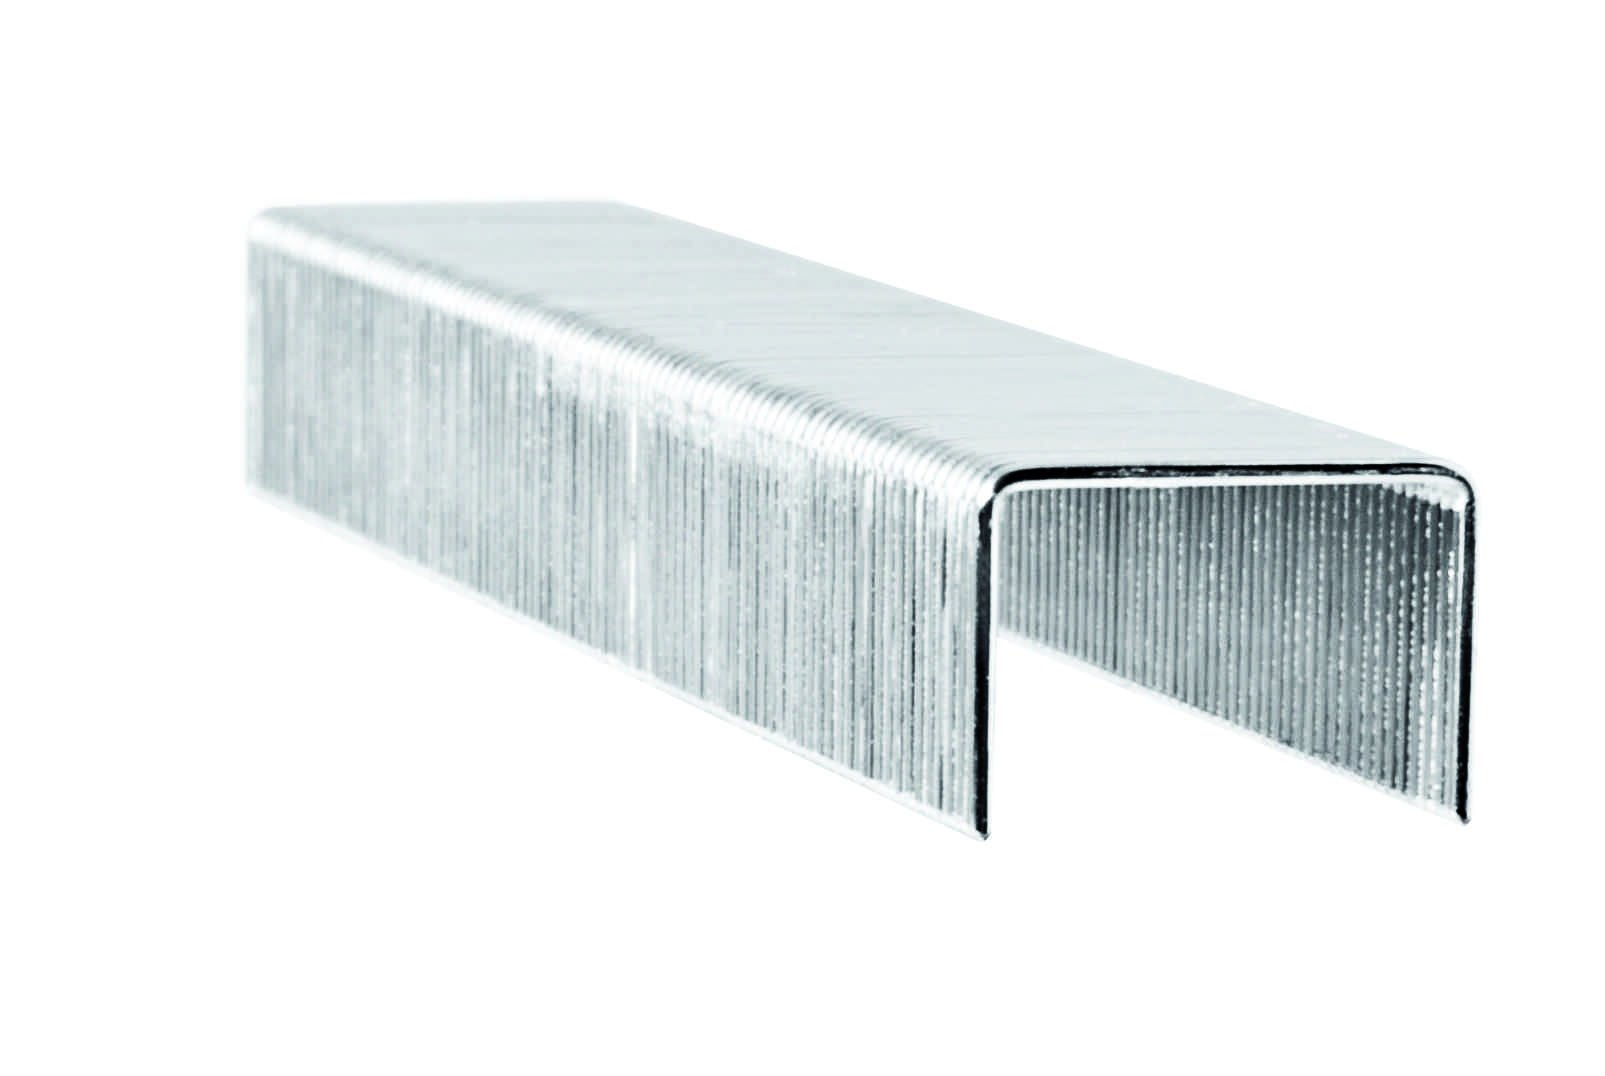 Rapid High Performance Staples, No.13 Leg Length 8 mm, 40303080-5000 Pieces by Rapid (Image #2)